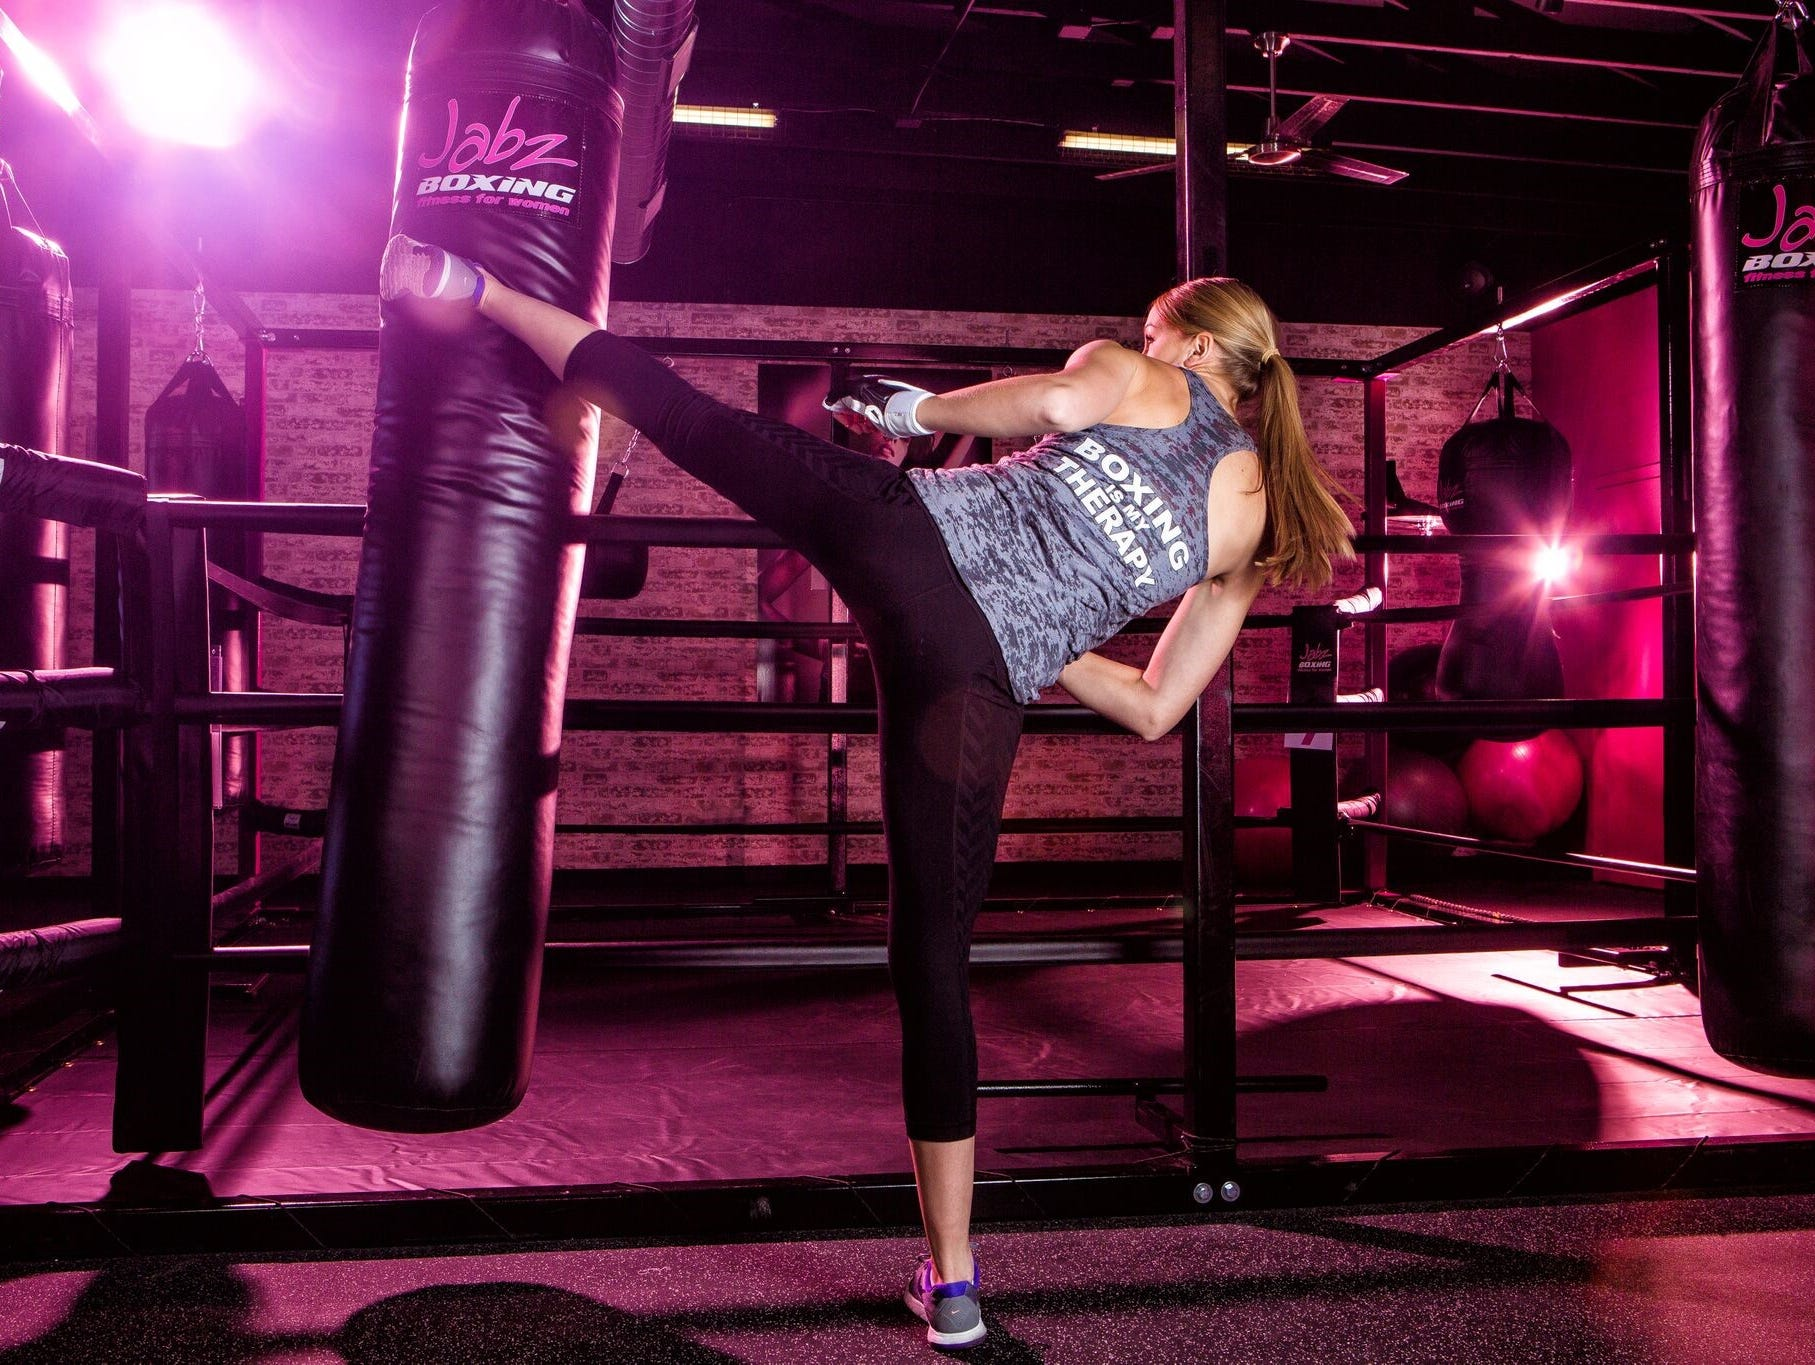 Come check out the hottest fitness studio in town, Jabz Boxing, a 45-min circuit designed specifically for women.